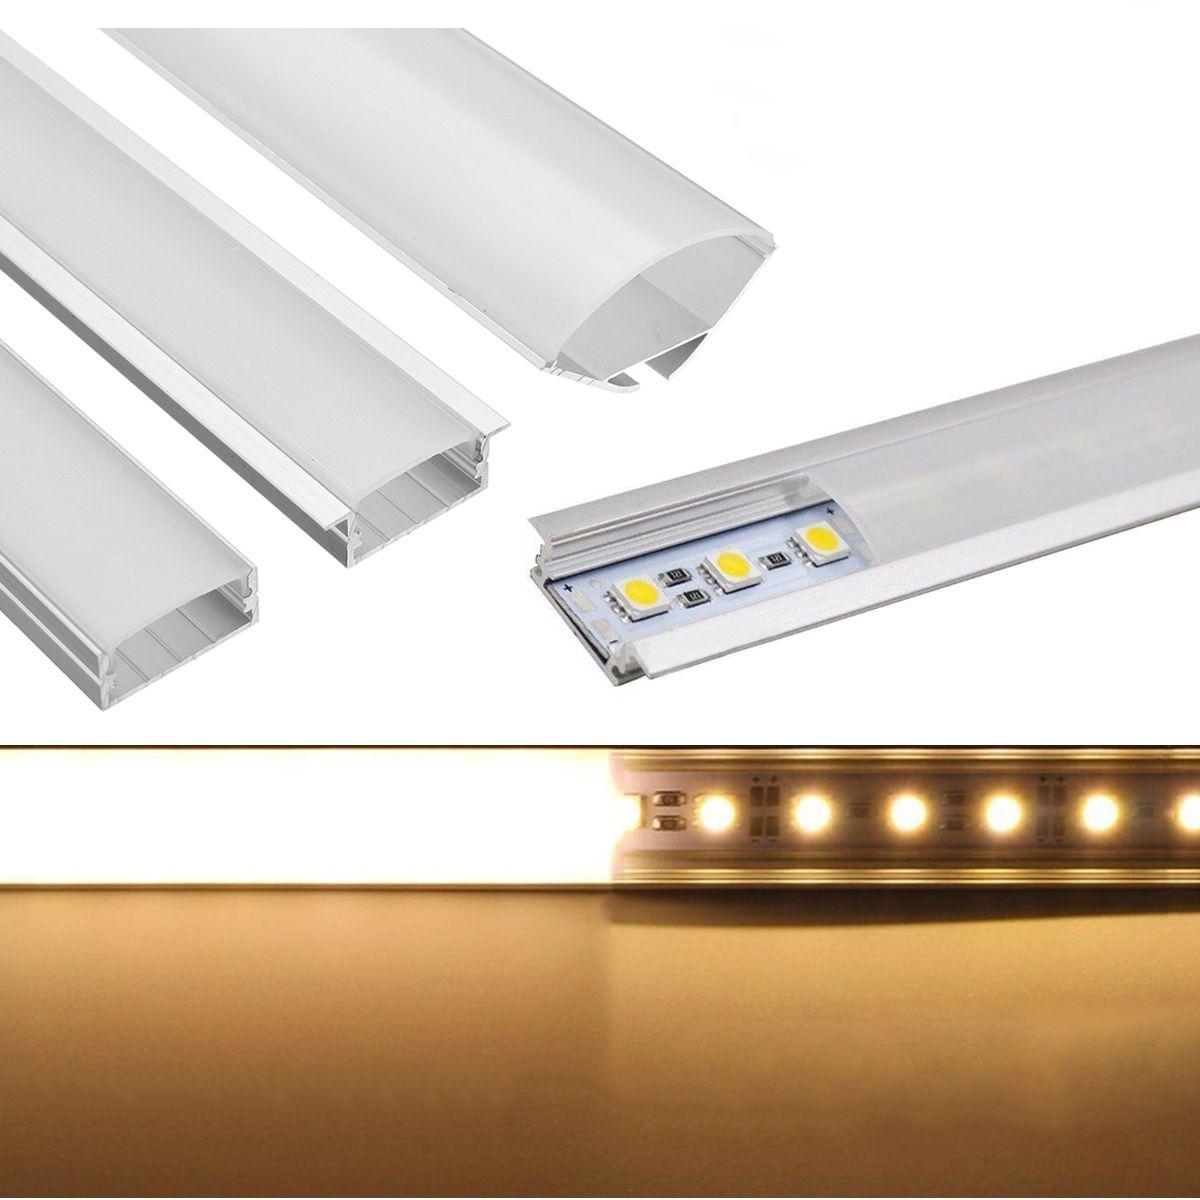 50cm U Yw V Shape Aluminum Channel Holder For Bar Under Cabinet Led Rigid Strip Light Lamp Lamp Light Under Cabinet Strip Lighting